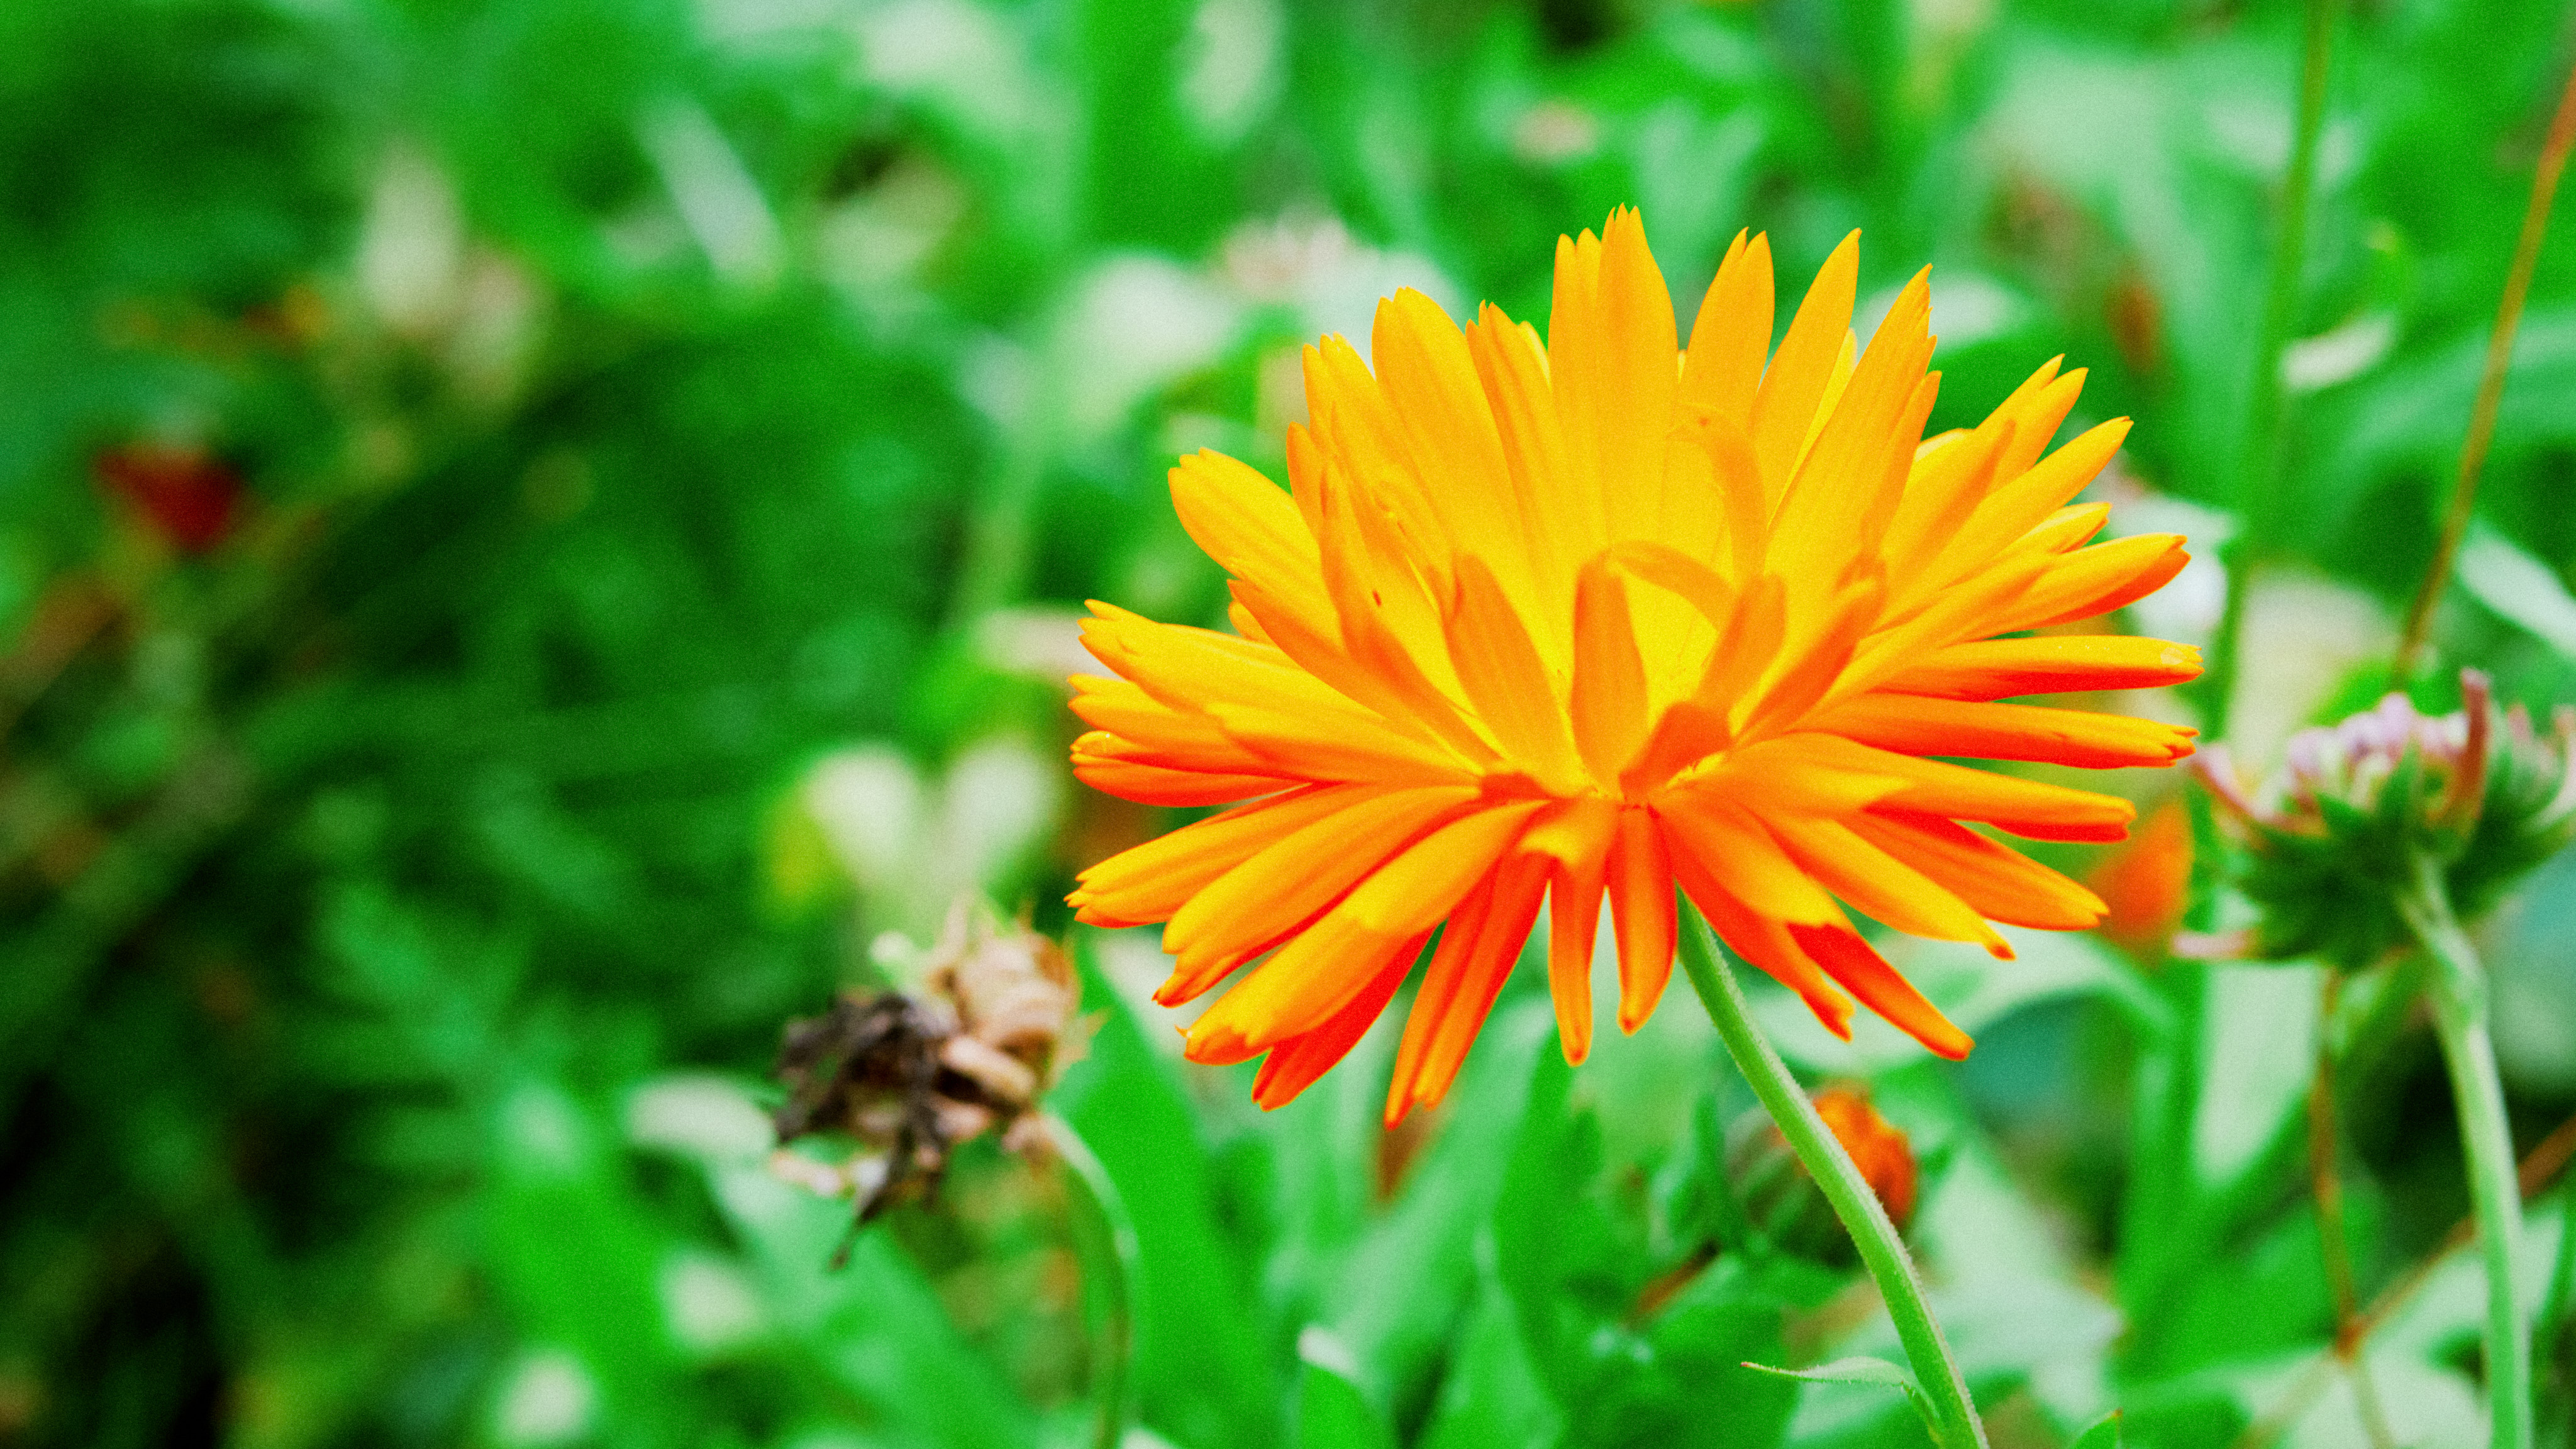 a really pretty orange flower with so many long, thin petals. wonder what it is?